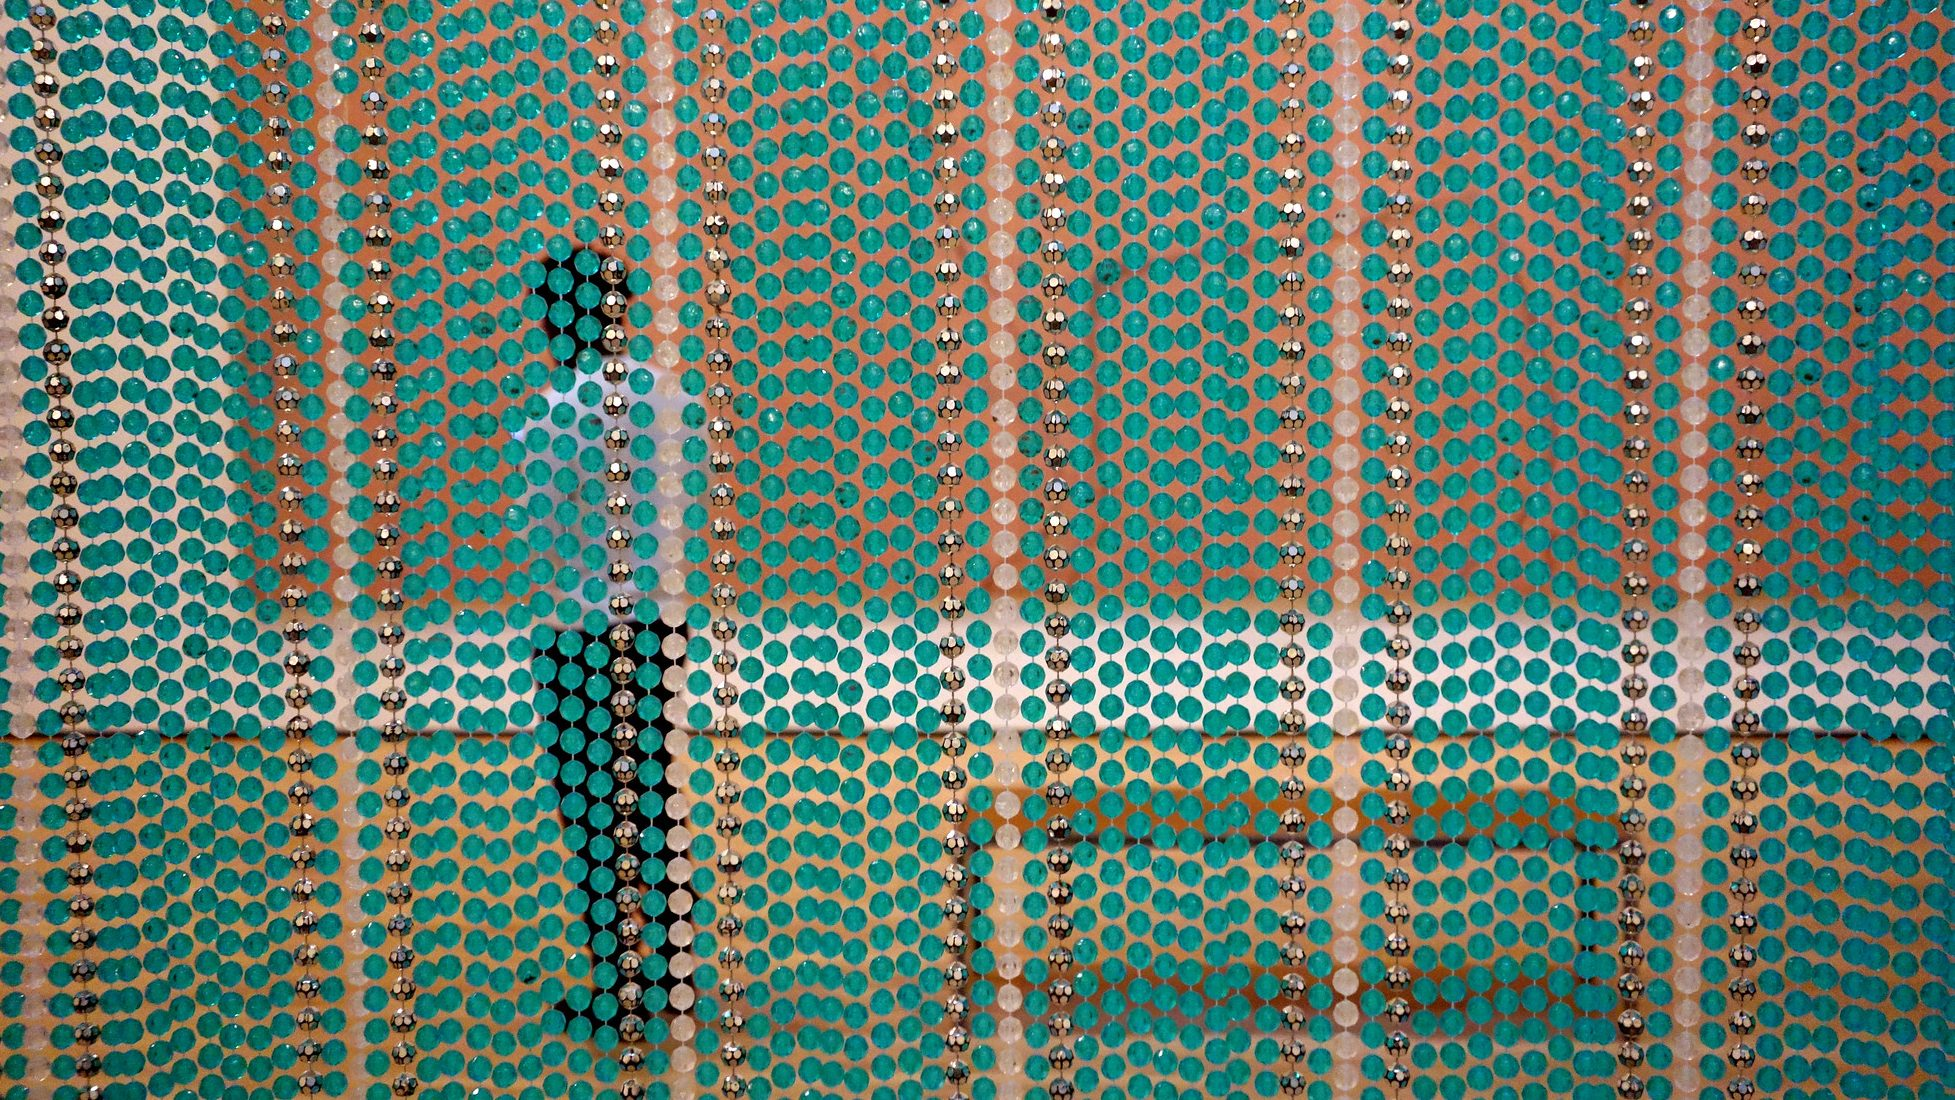 A visitor standing in a gallery looking at a painting seen through a colorful bead curtain